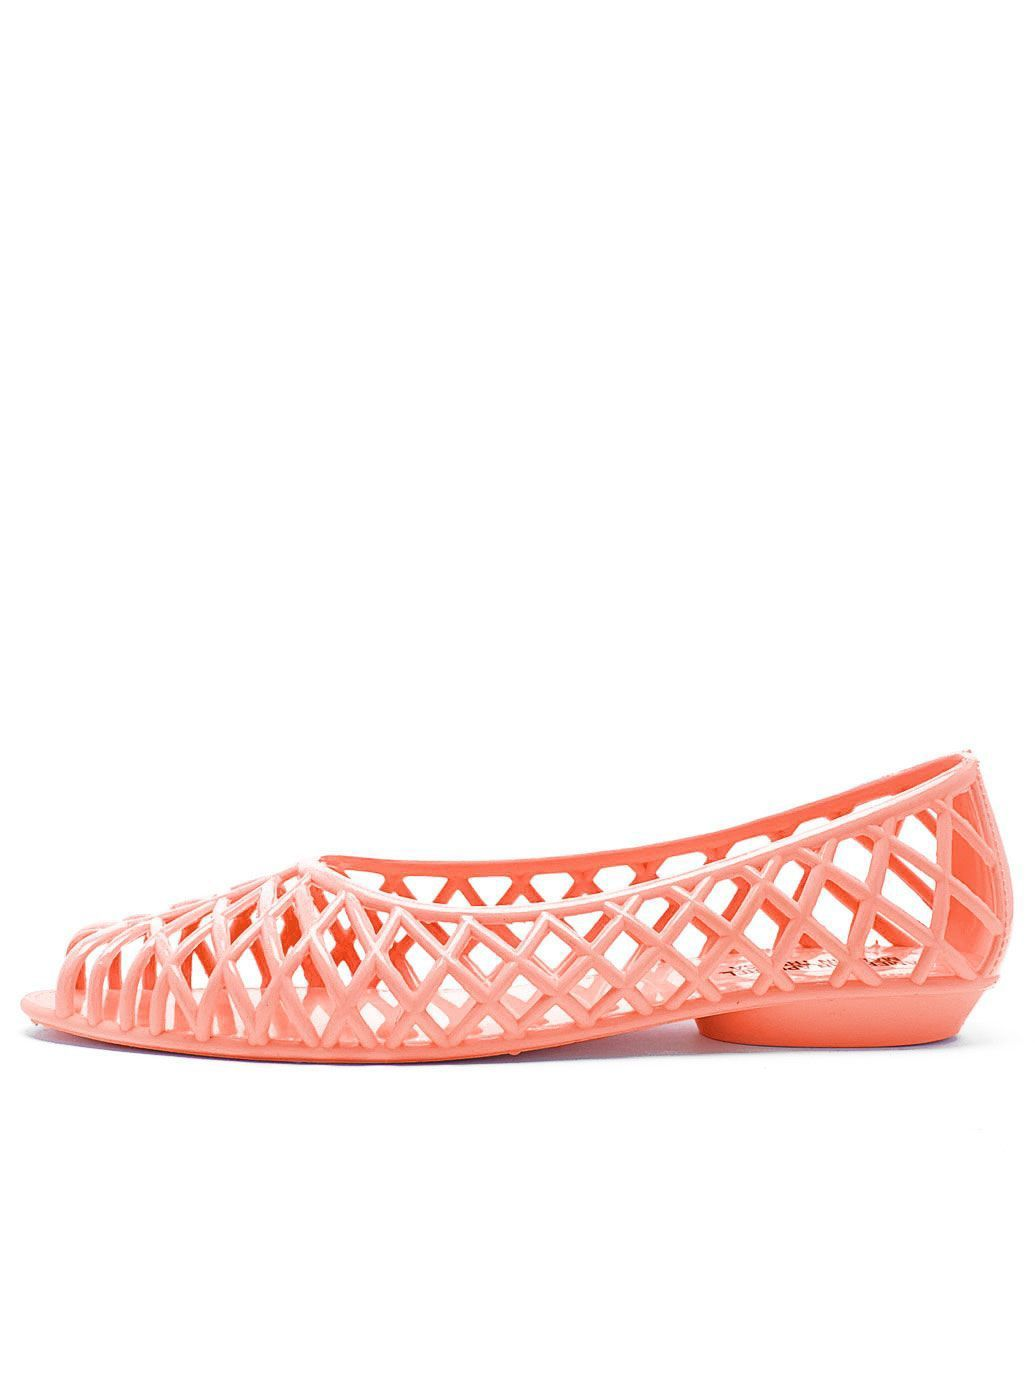 2daedb2bfe52 Flat Lattice Jelly Sandal.  AmericanApparel